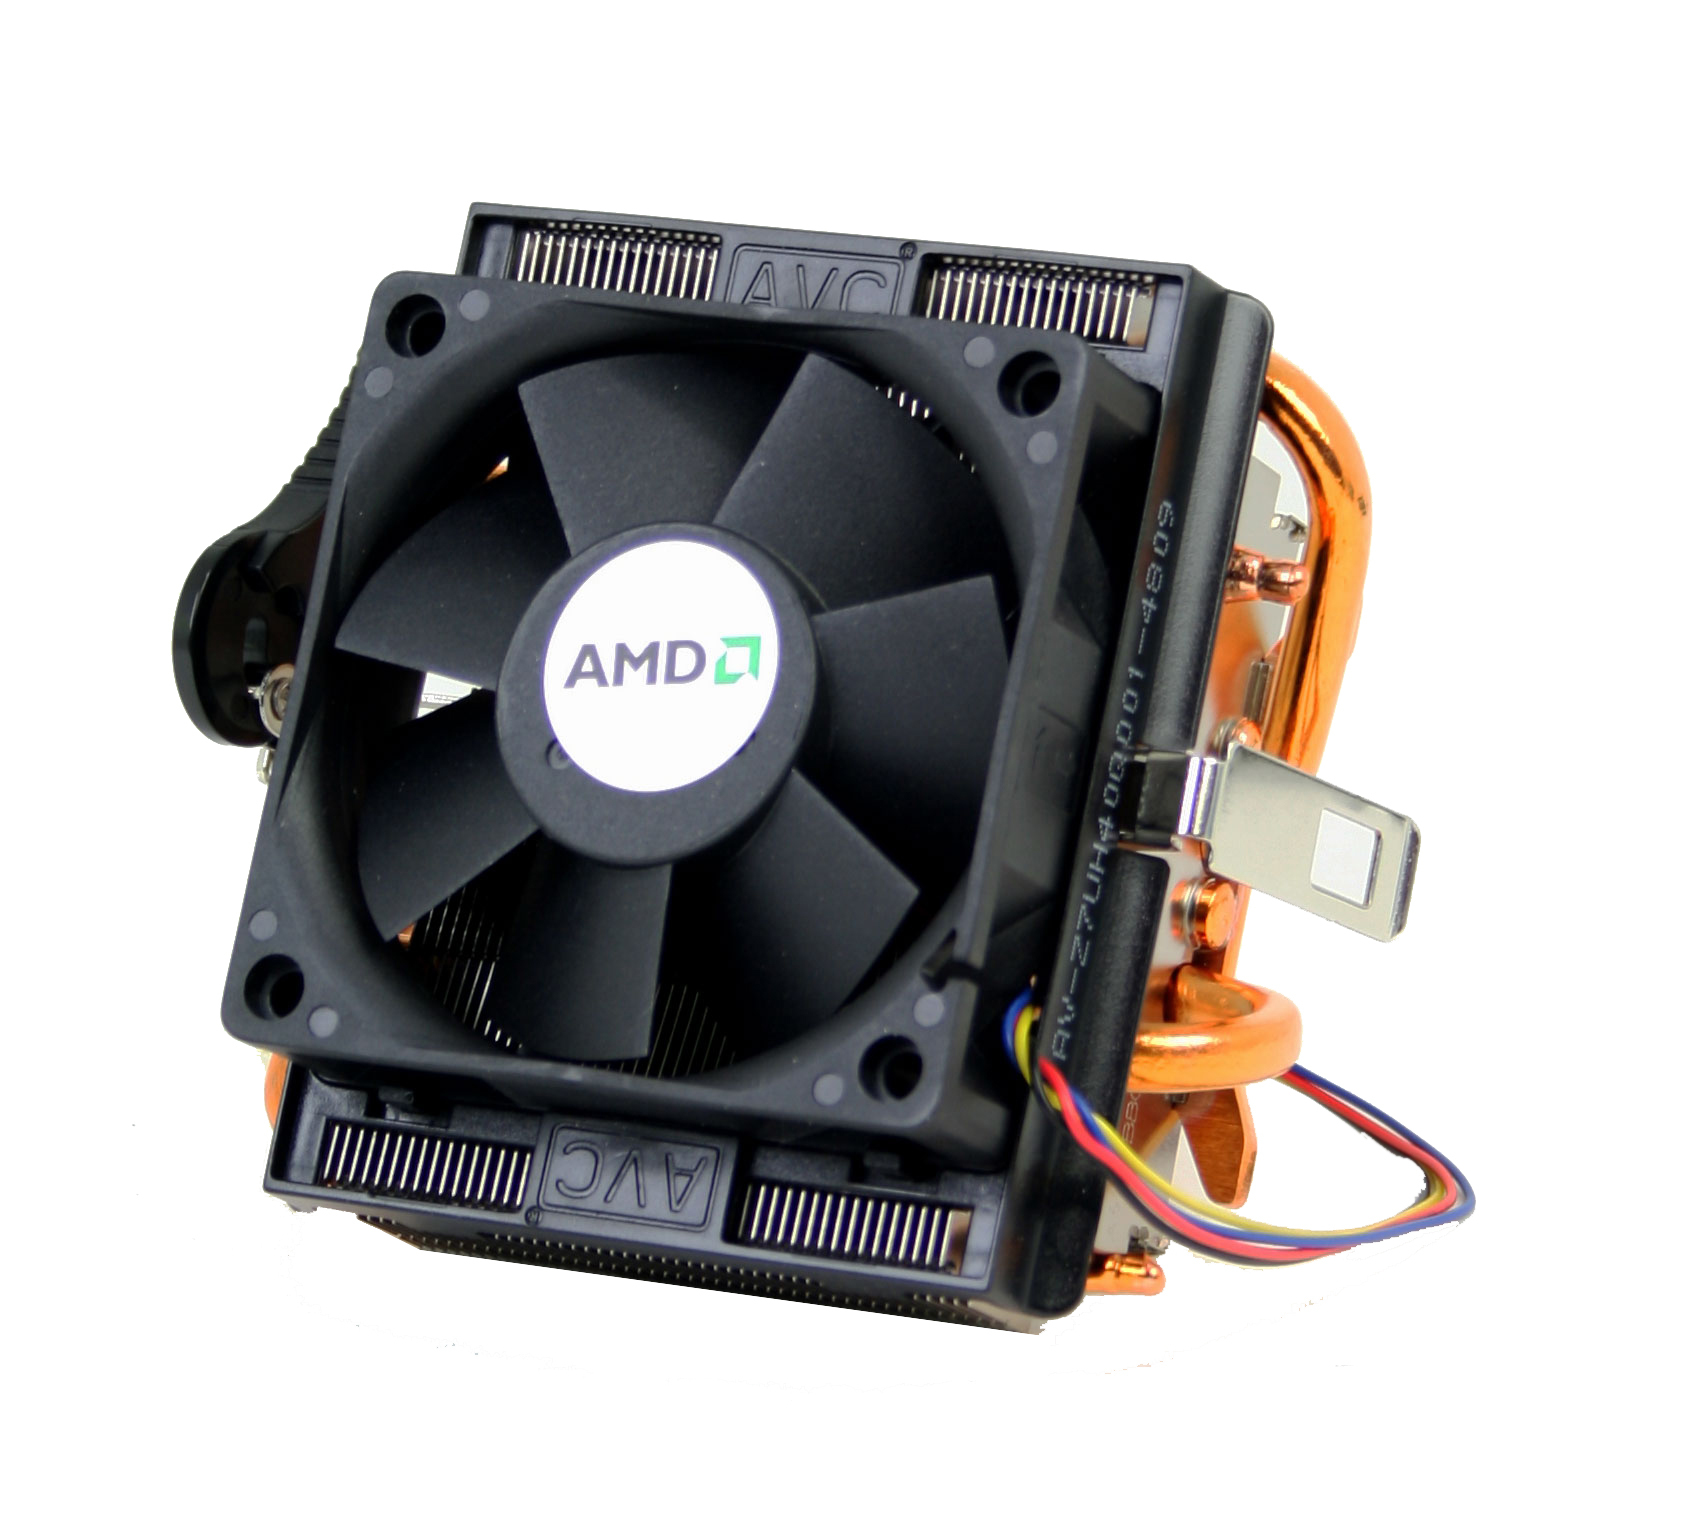 AMD should use the same clip on bracket on their GPUs as